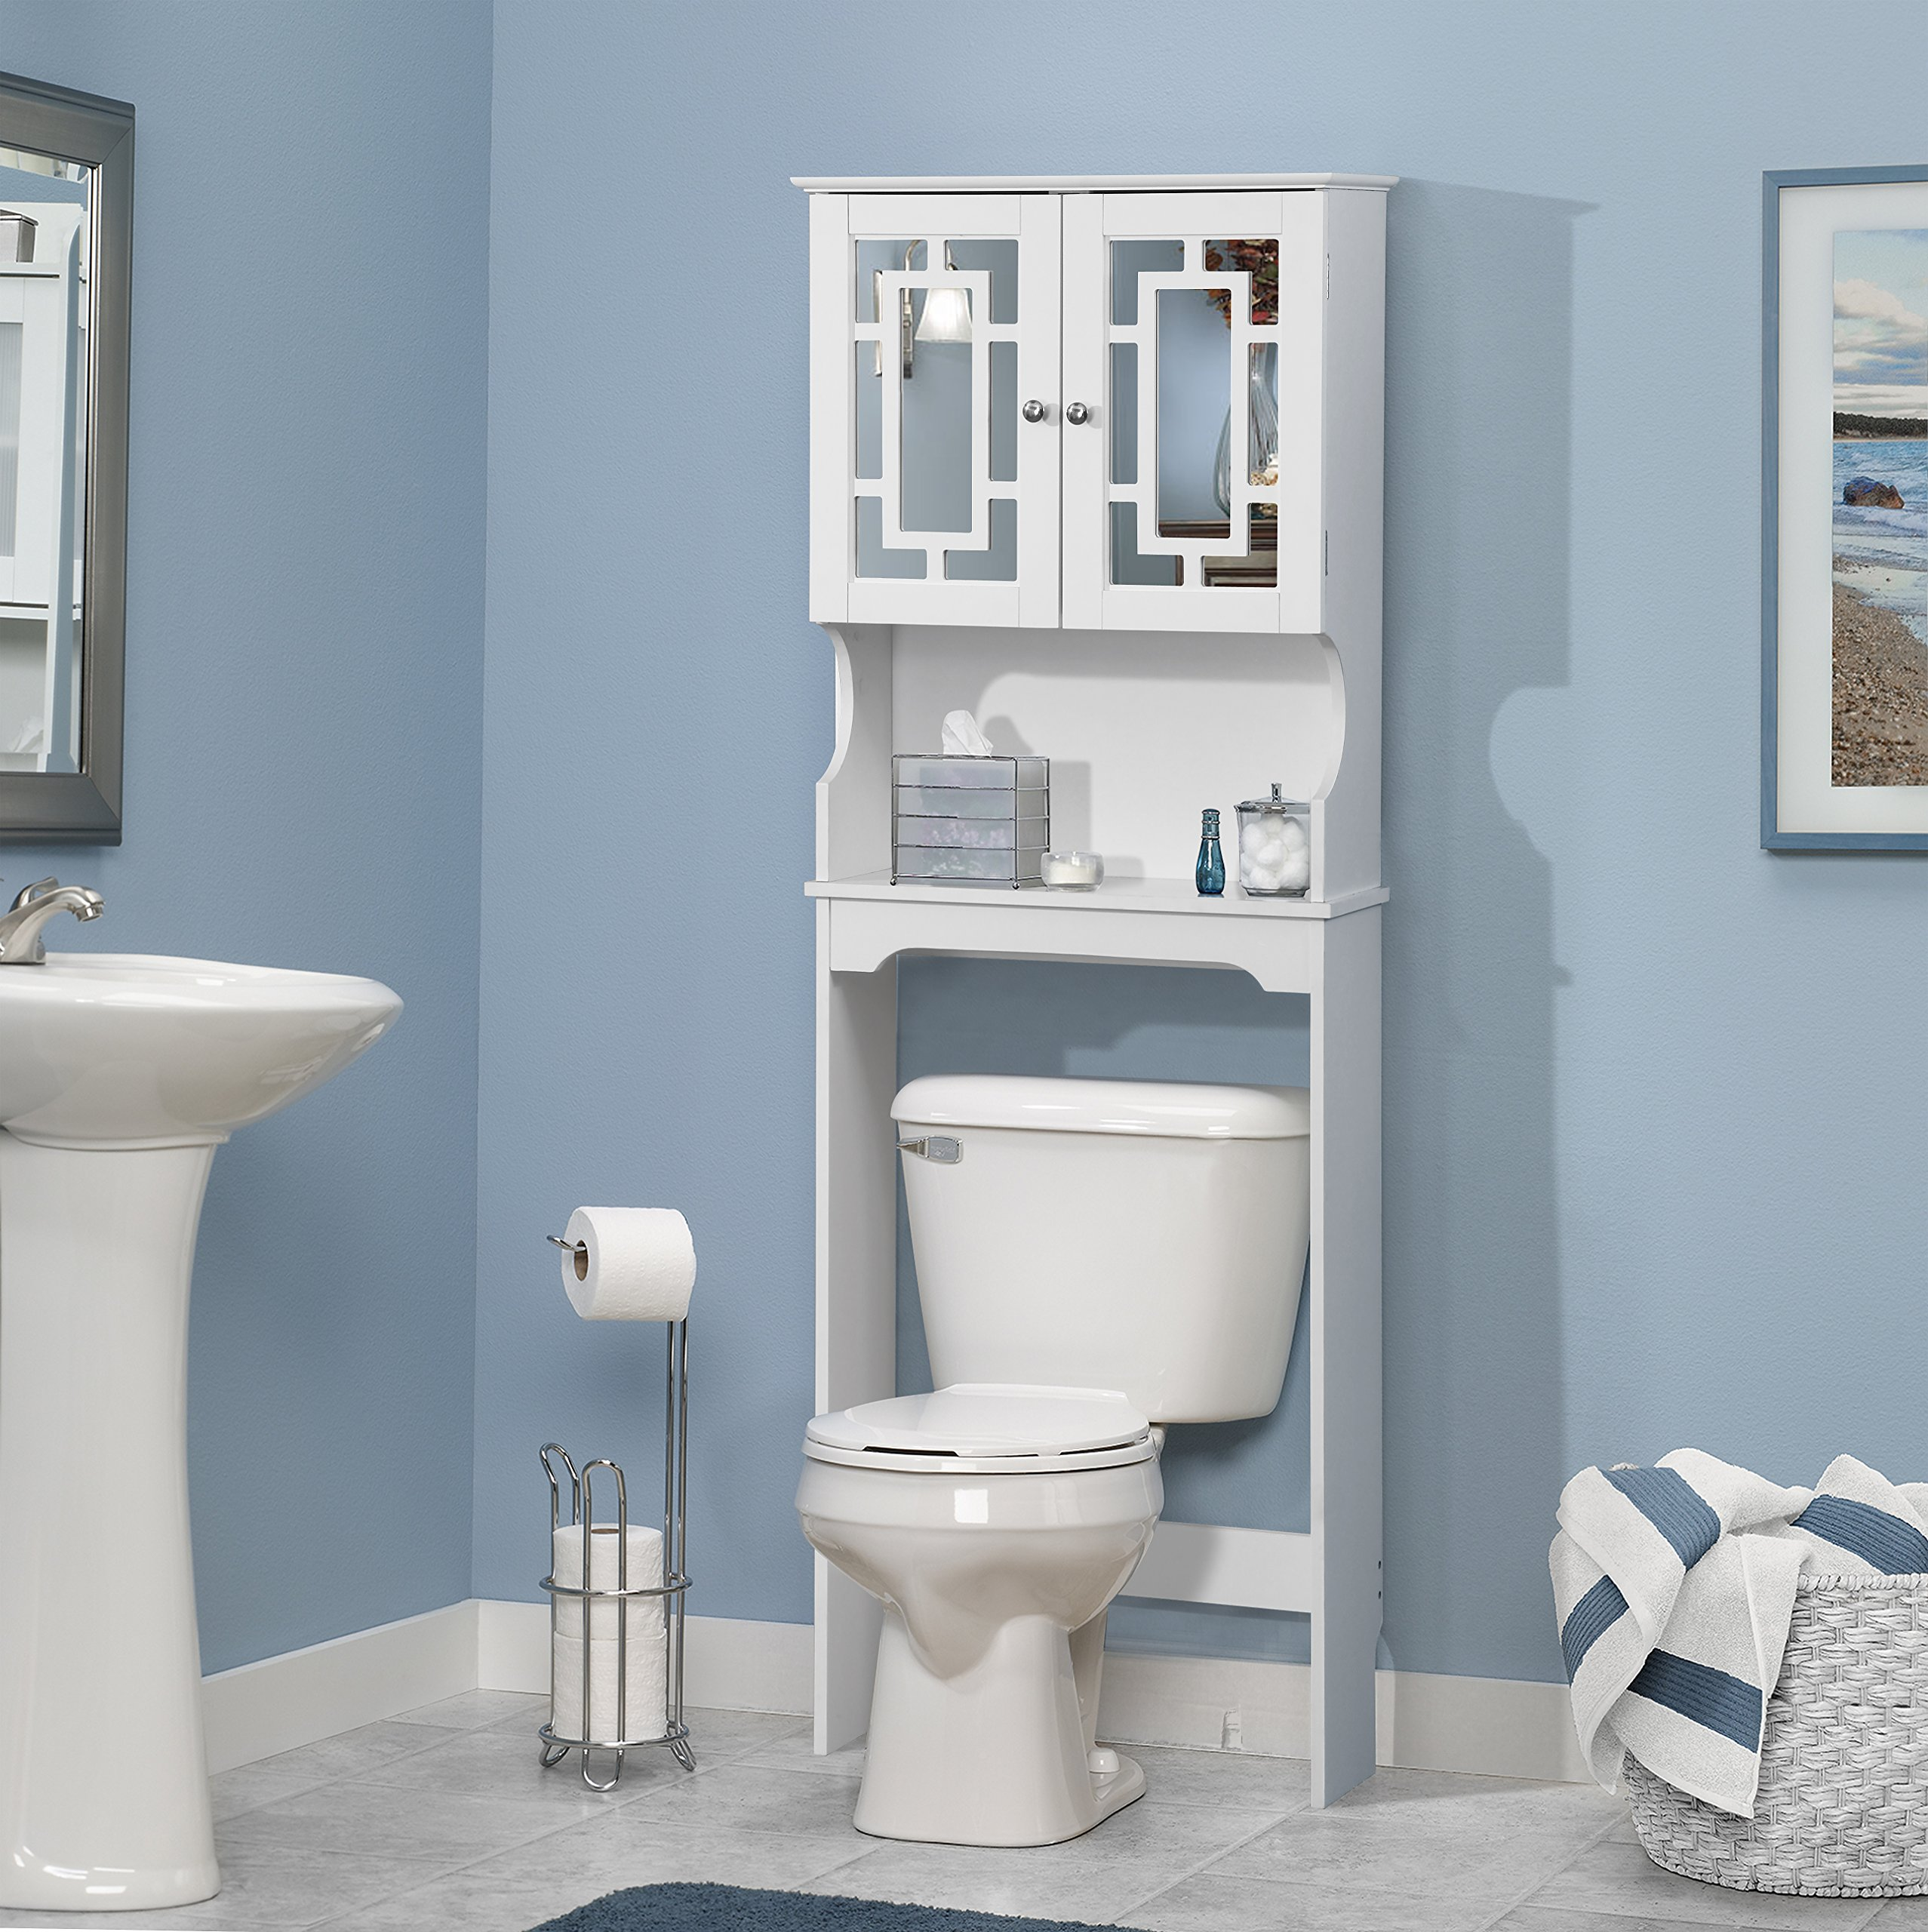 Home Source Industries 5189 Bathroom Space Saver with Shelf and 2-Door Mirrored Cabinet, White